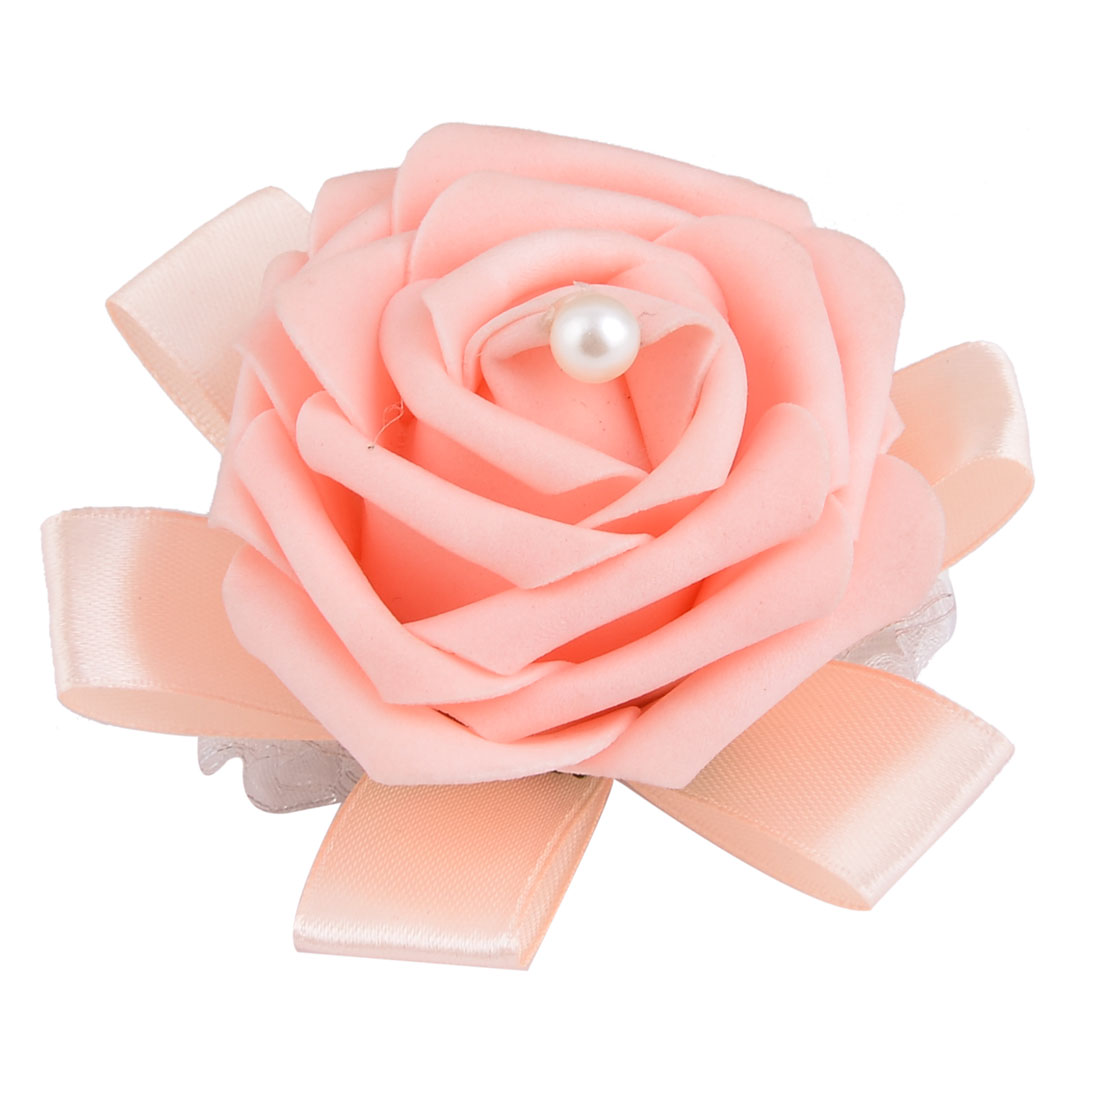 Wedding Foam Rose Design Bridesmaid Hand Decorative Artificial Wrist Flower Light Pink